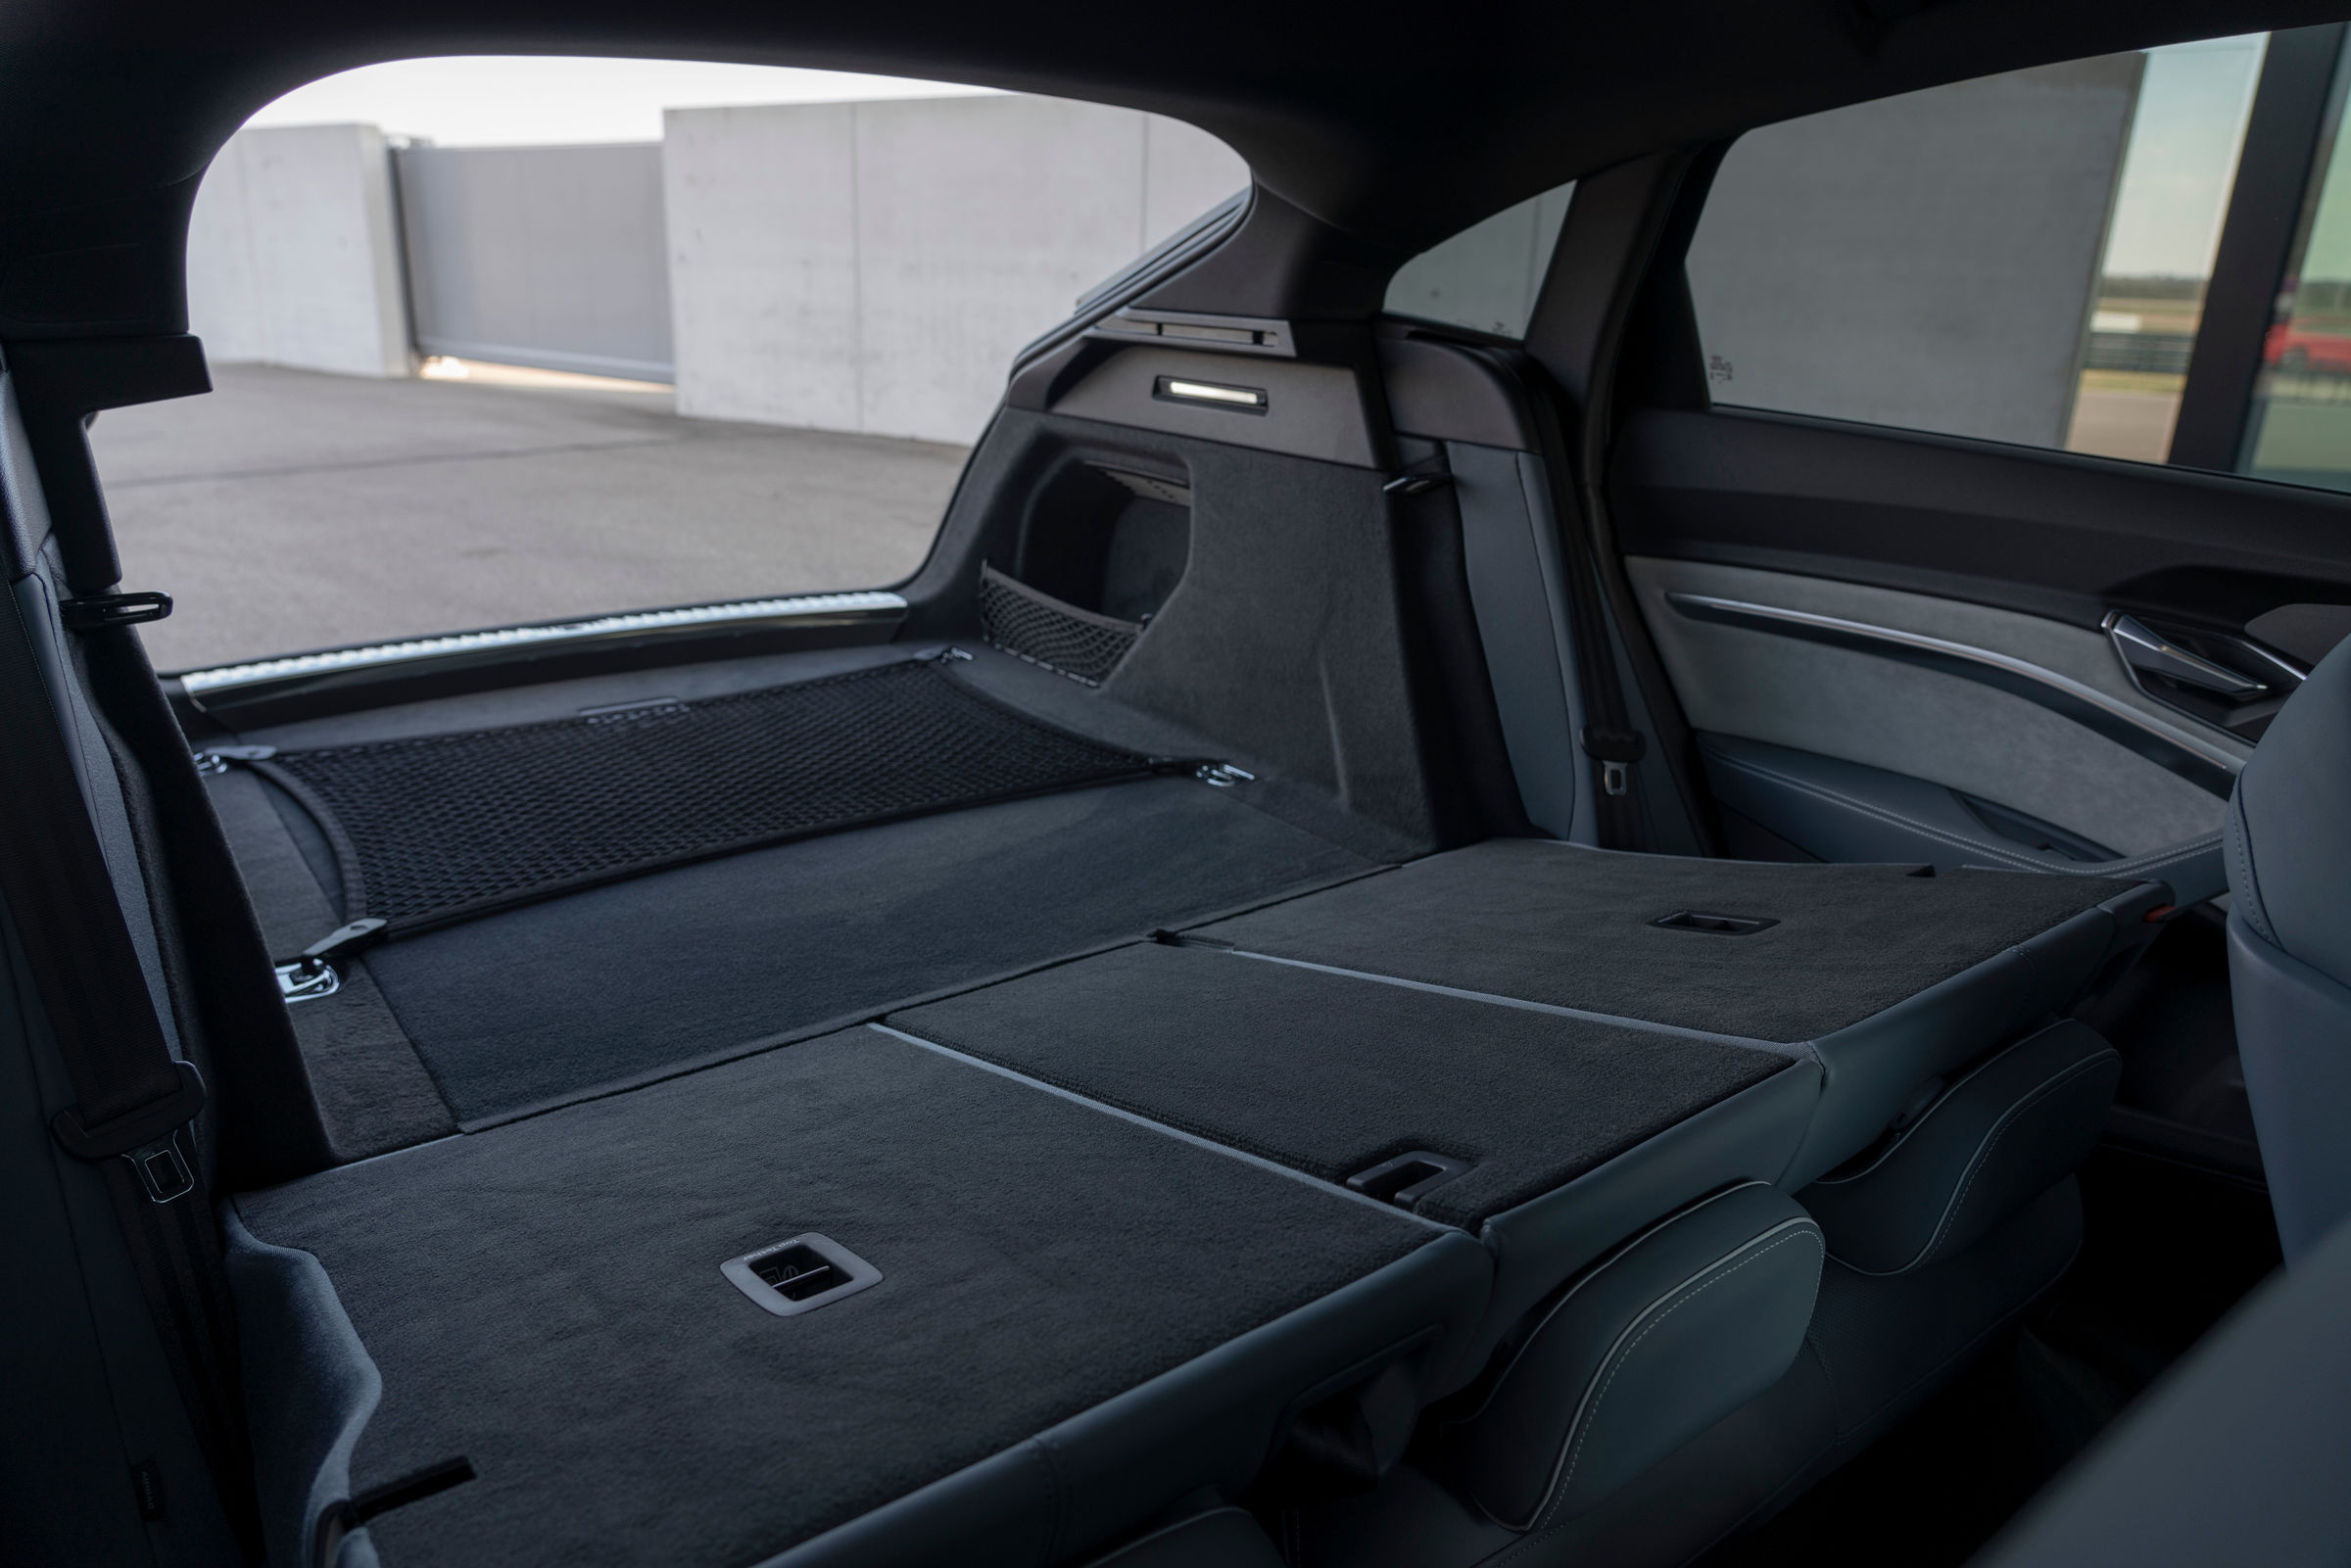 Audi e-tron Sportback trunk with seats folded down